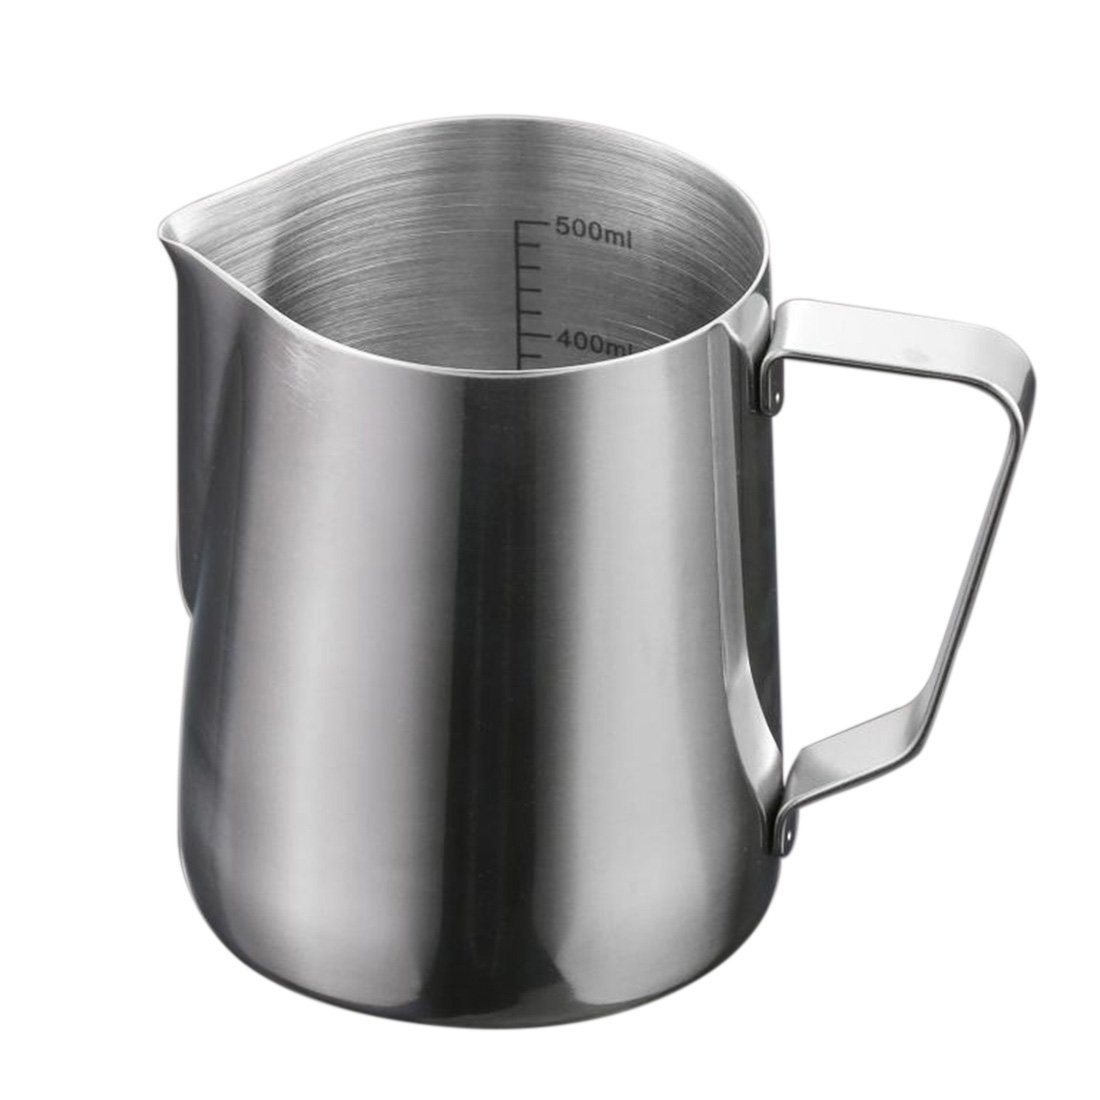 (550ml) - Milk Frothing Pitcher, Yamix Stainless Steel Milk Frothing Pitchers Milk Cup Professional Latte Milk Steaming Pitcher 18.6oz/550ml for Espresso Maker, Hot Milk Frother and Cappuccino Maker  550ml B01N2Z0YL6